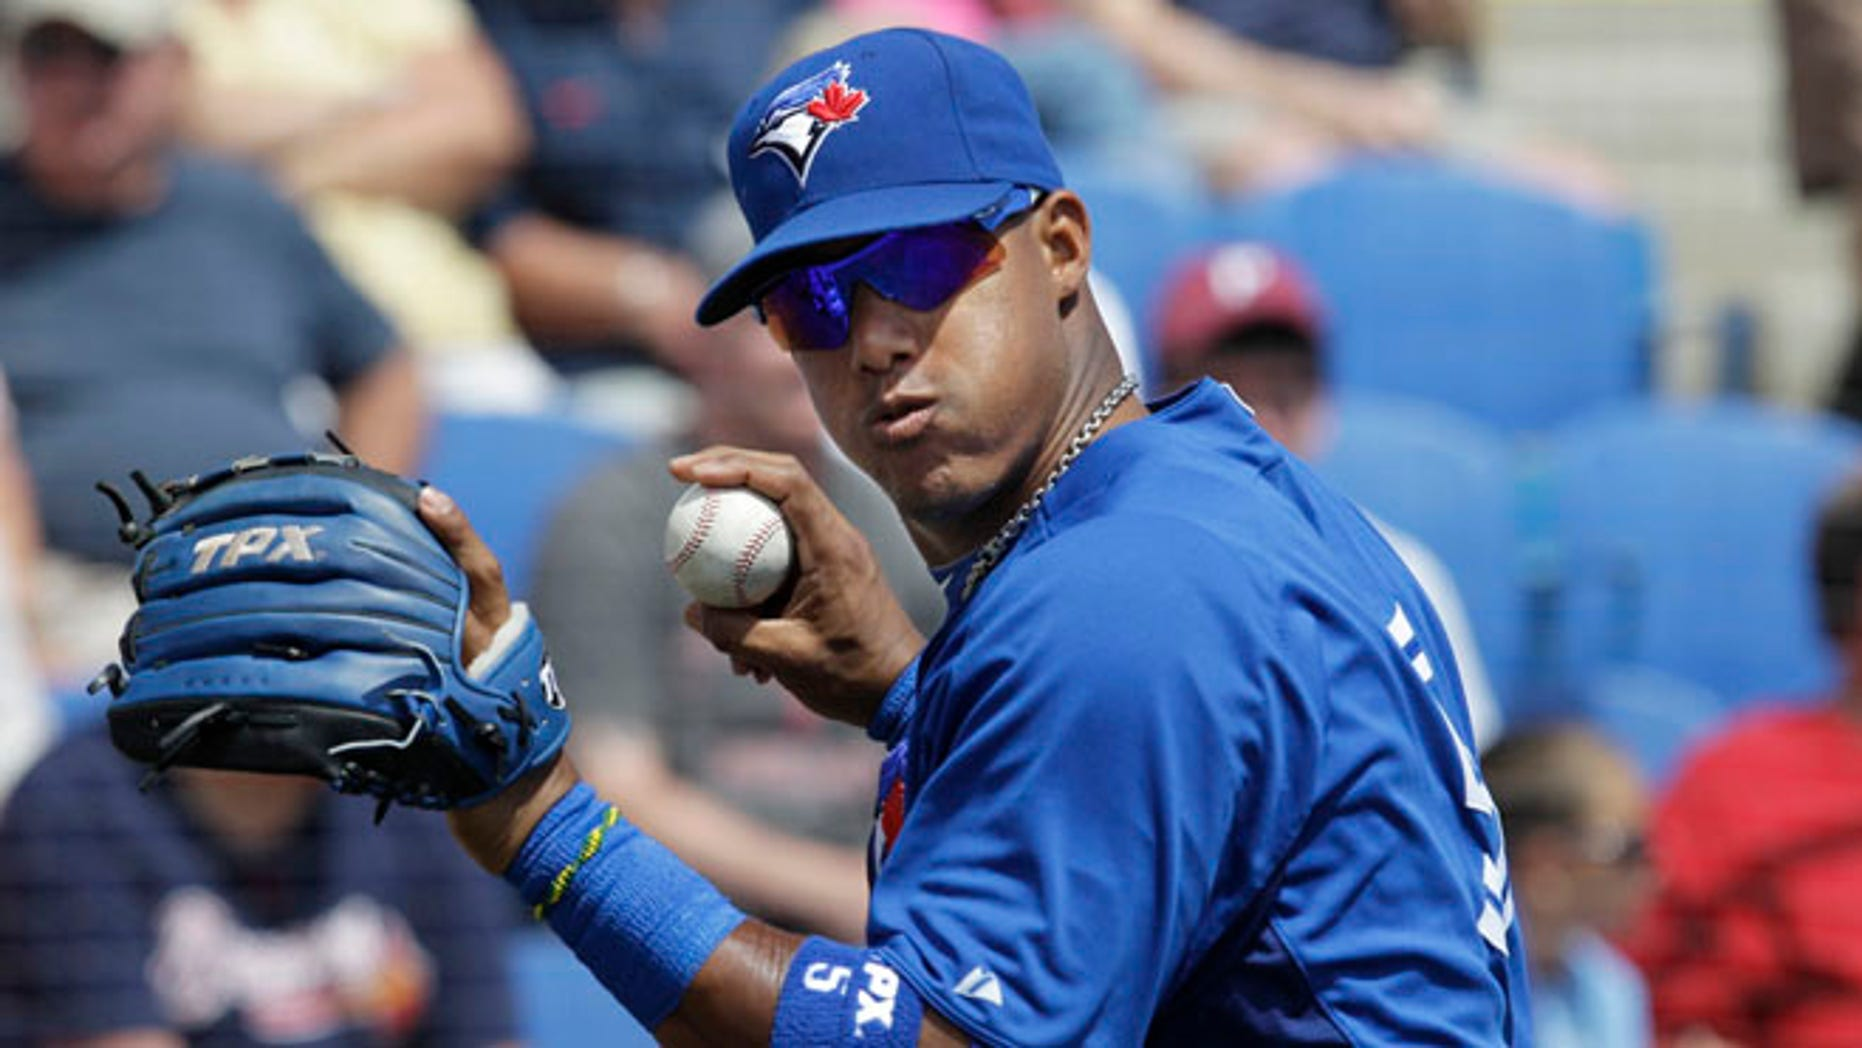 March 24, 2012: This file photo, shows Toronto Blue Jays shortstop Yunel Escobar warming up before a spring training baseball game against the Atlanta Braves, in Dunedin, Fla.